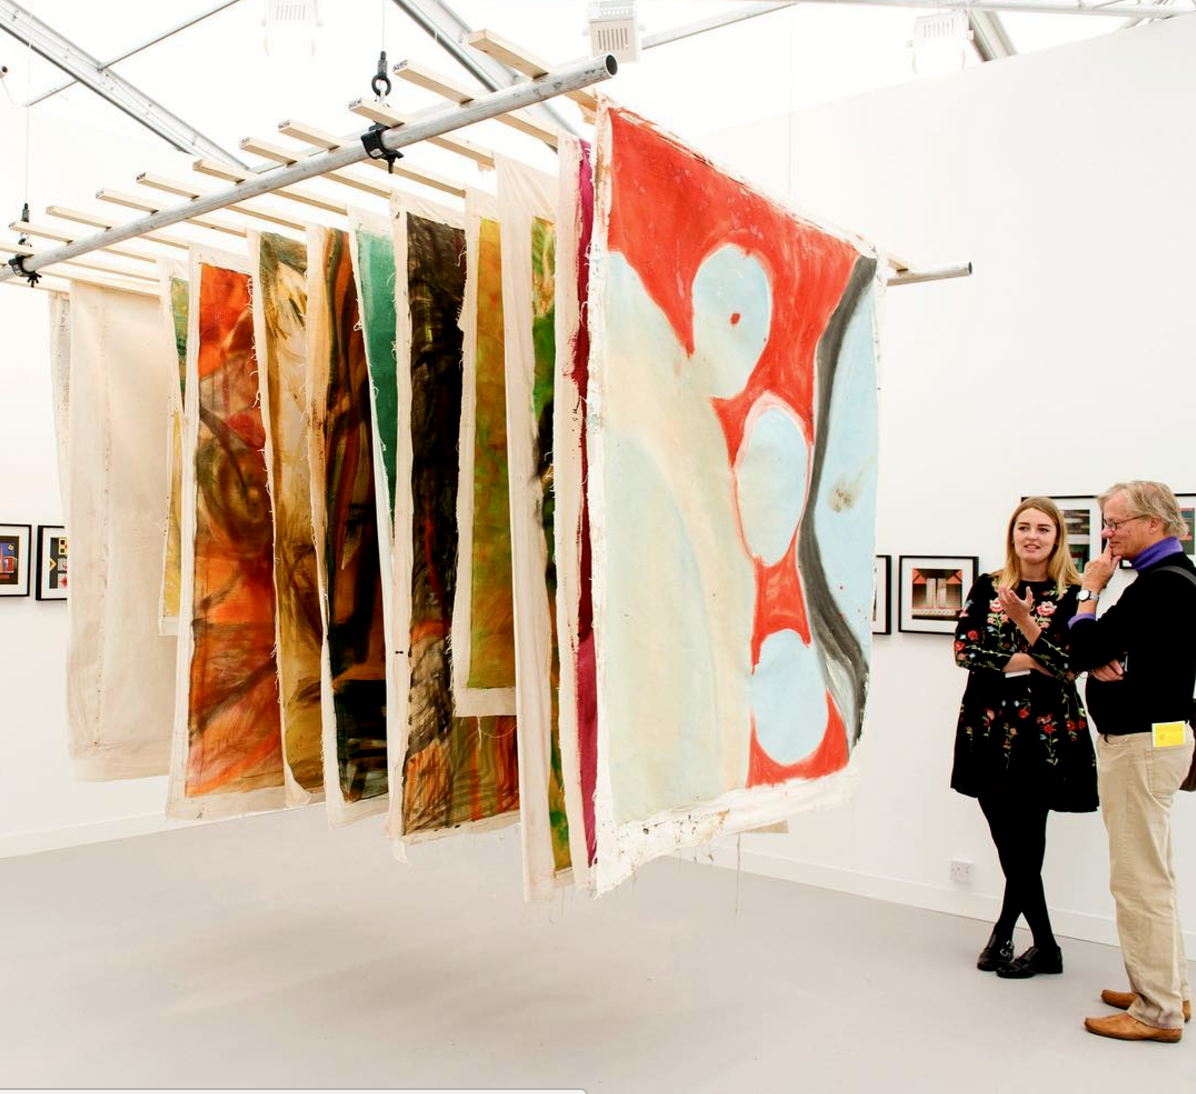 Proyectos Ultravioleta booth at Frieze Art Fair, London, 2016